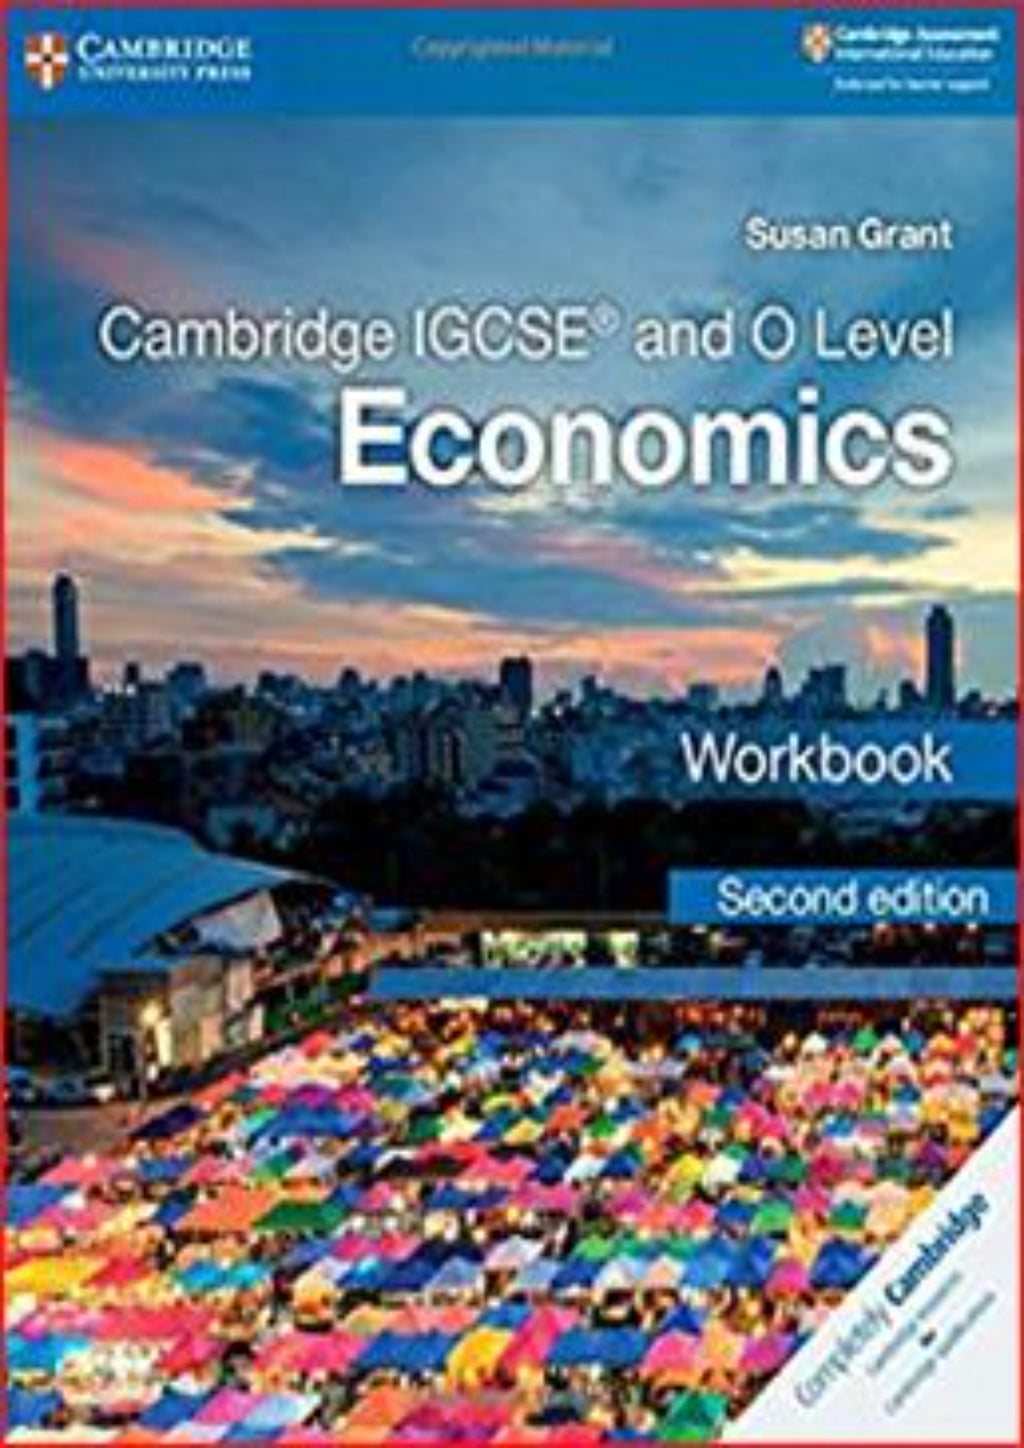 Cambridge IGCSE/O-Level Economics (0455) Workbook (2nd Edition)